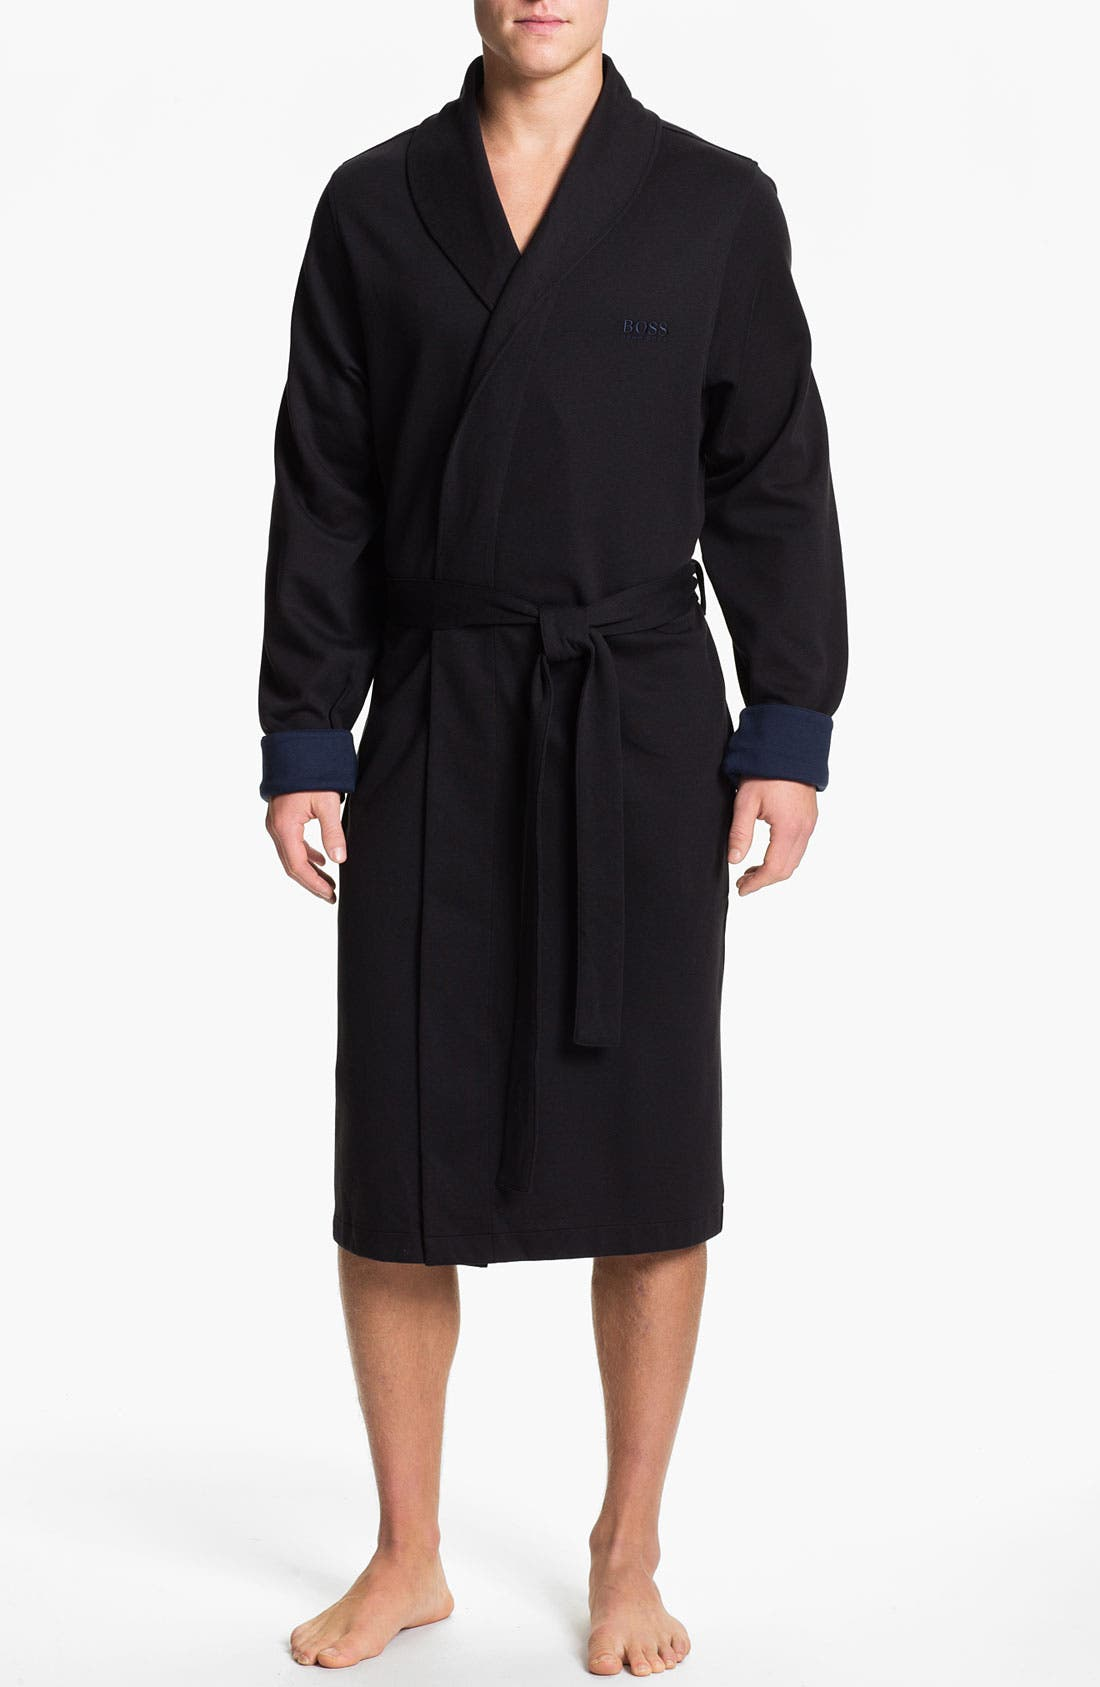 Main Image - BOSS HUGO BOSS 'Innovation 3' Shawl Collar Knit Robe